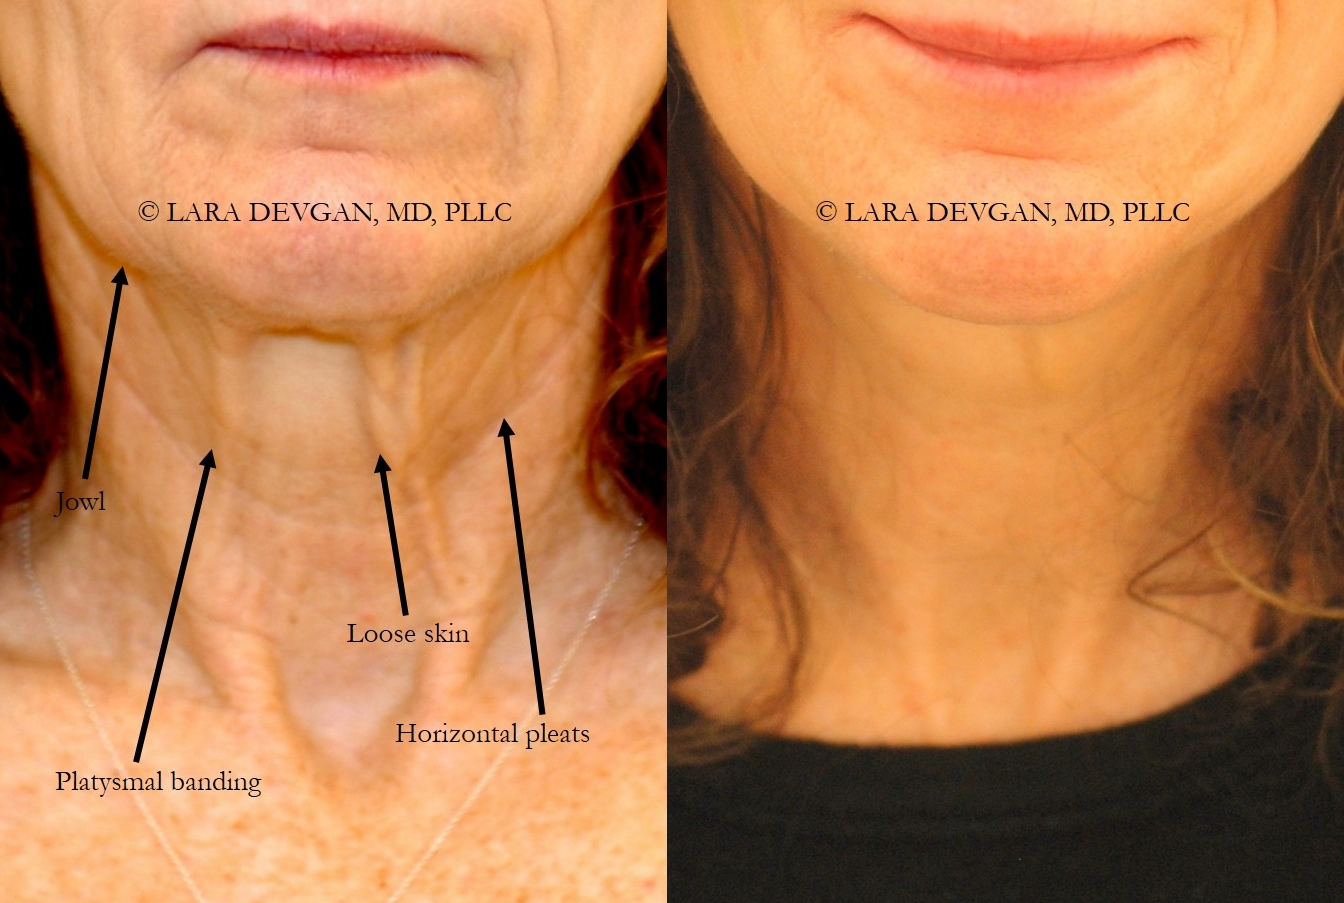 Actual patient of Dr. Devgan, before and after facelift and necklift (short-scar approach) with fat grafting.